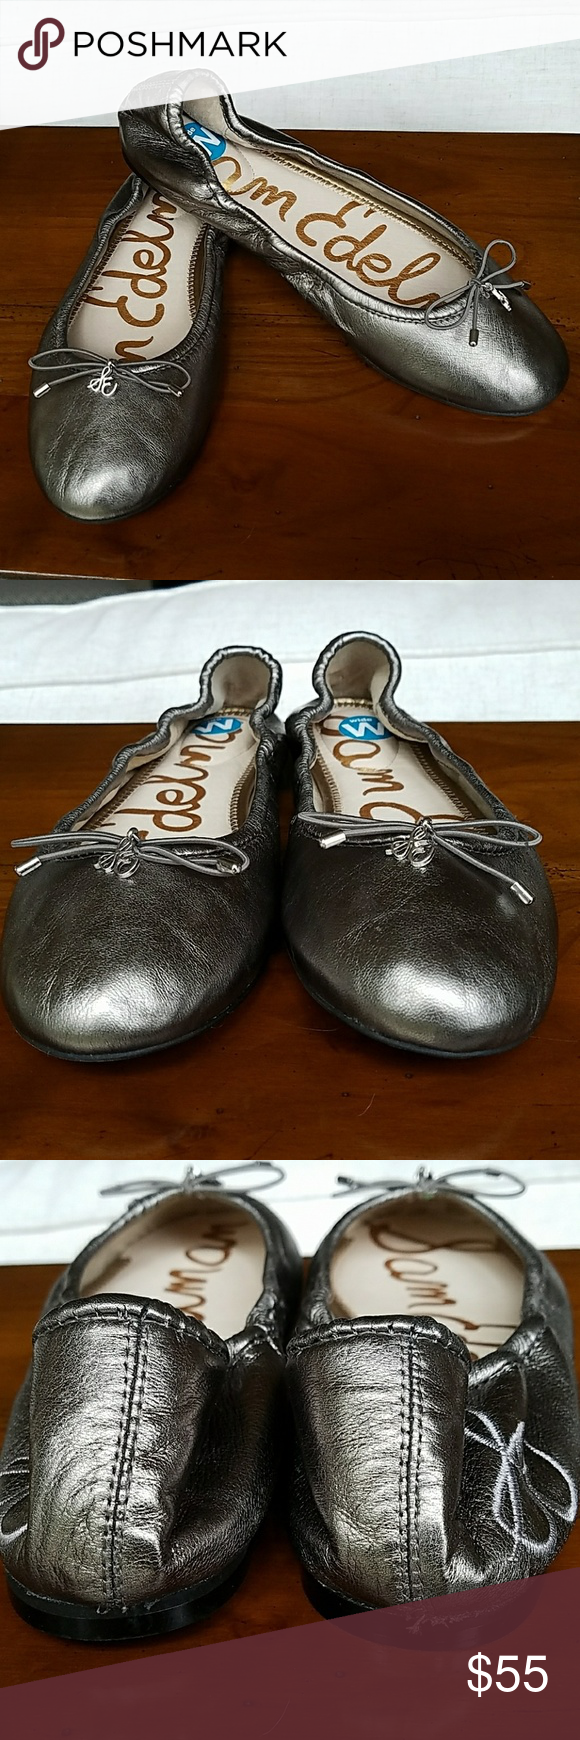 f1e2b9c21ac Sam Edelman Silver Gray Felicia Flats Worn once for about a half hour. Size  7.5 wide. I don t have a very wide foot and these fit very well.